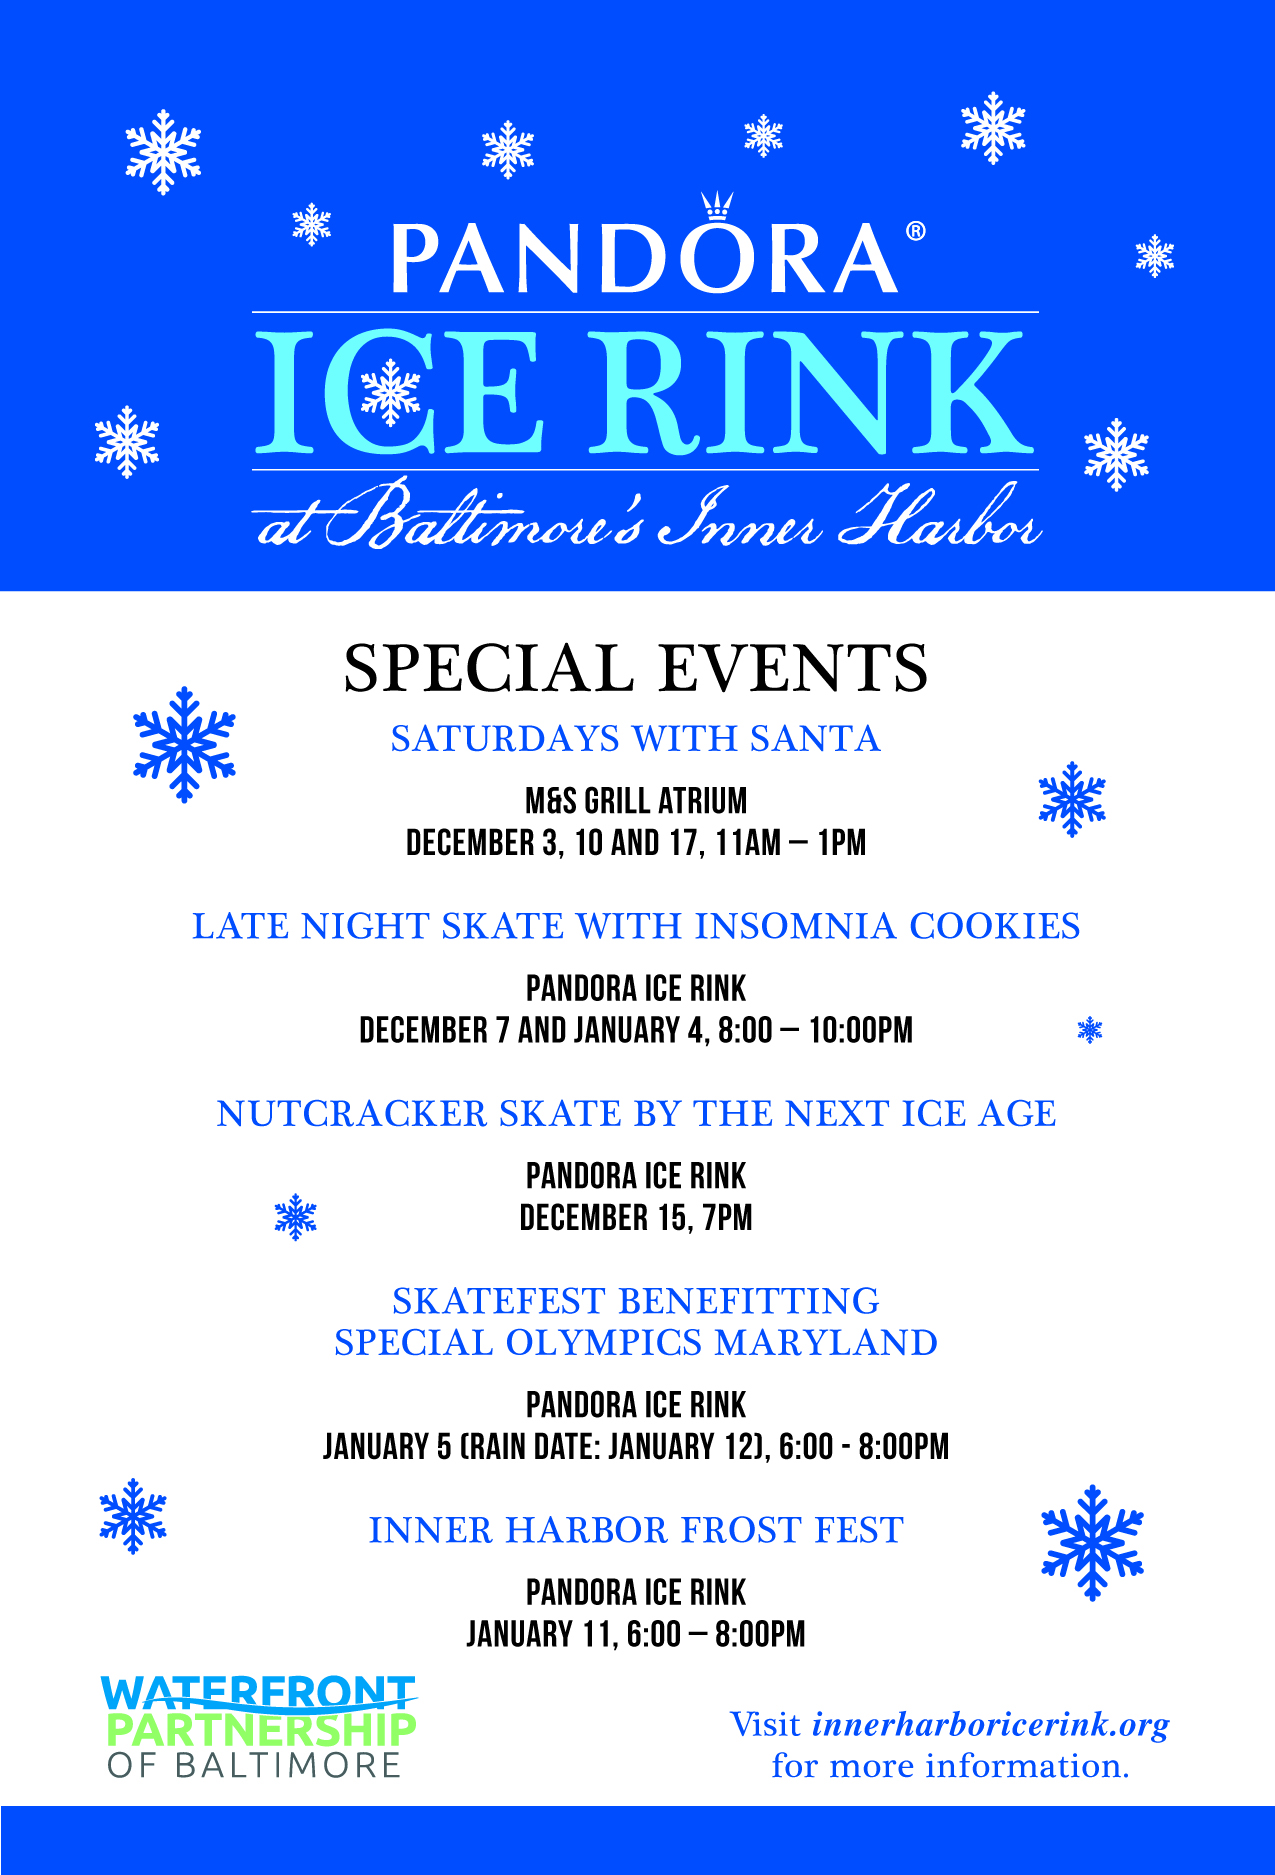 2016-Ice-rink-postcard-BACKw-bleeds-copy